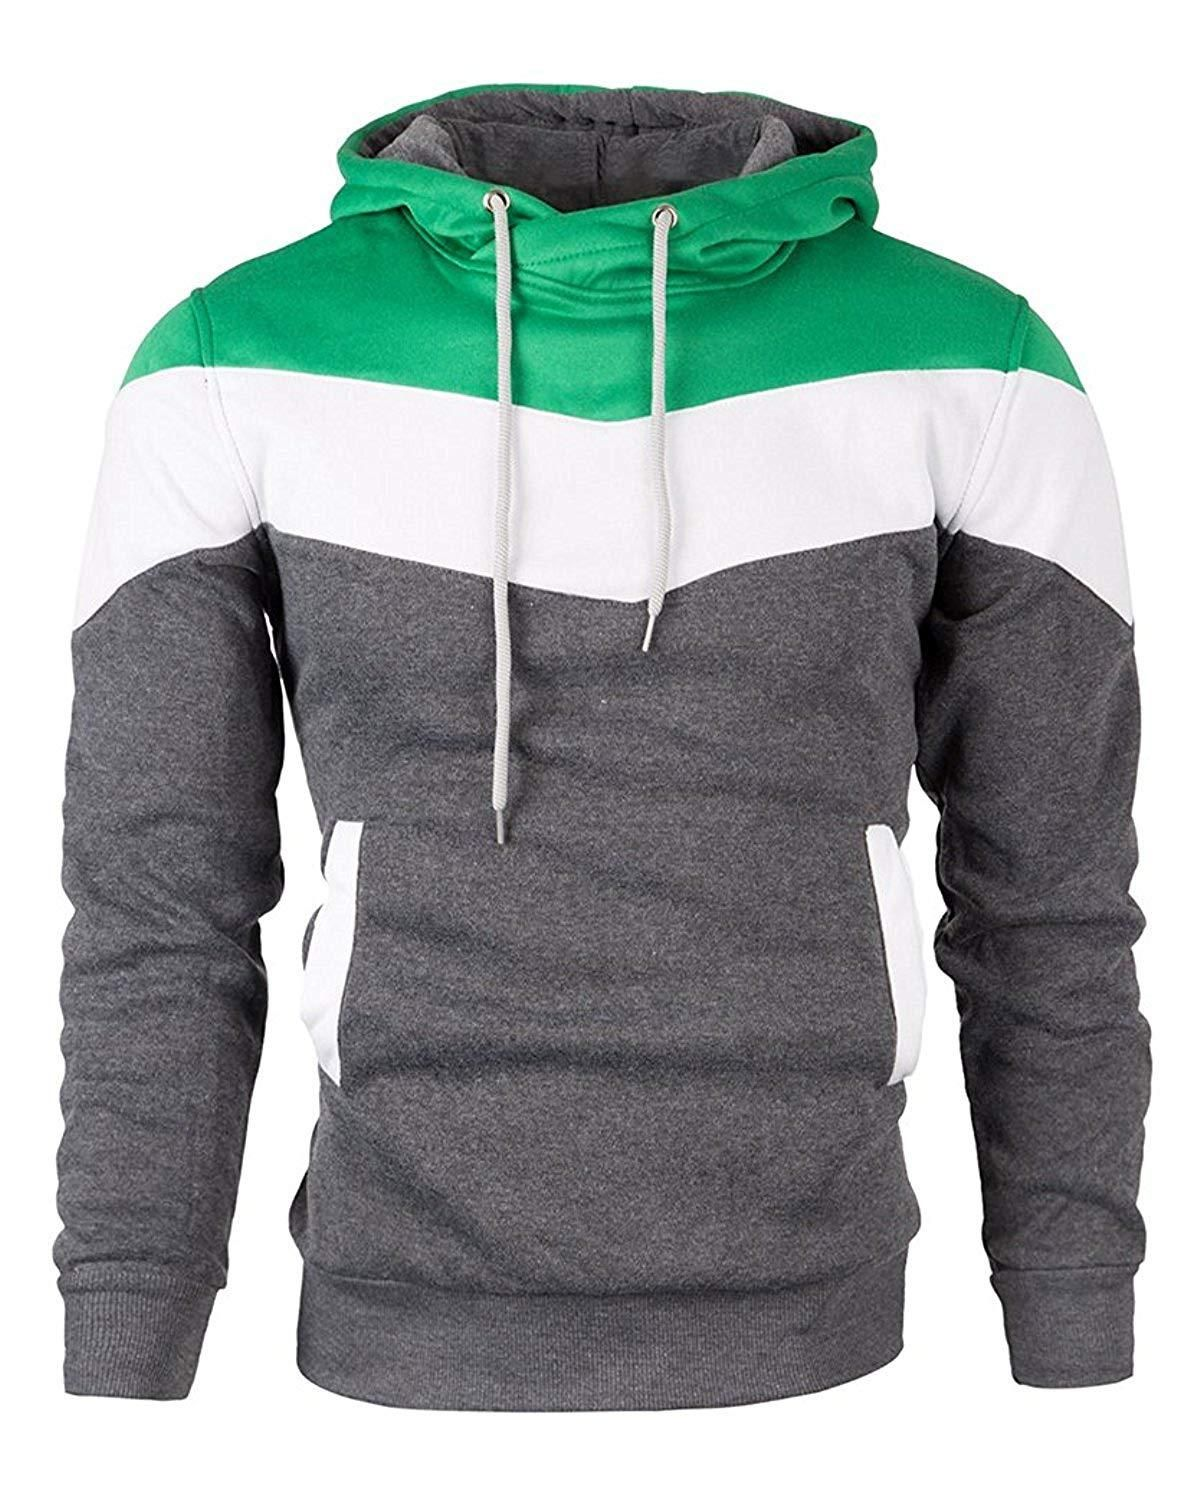 44f045b1 Mooncolour Mens Novelty Color Block Hoodies Cozy Sport Outwear ...